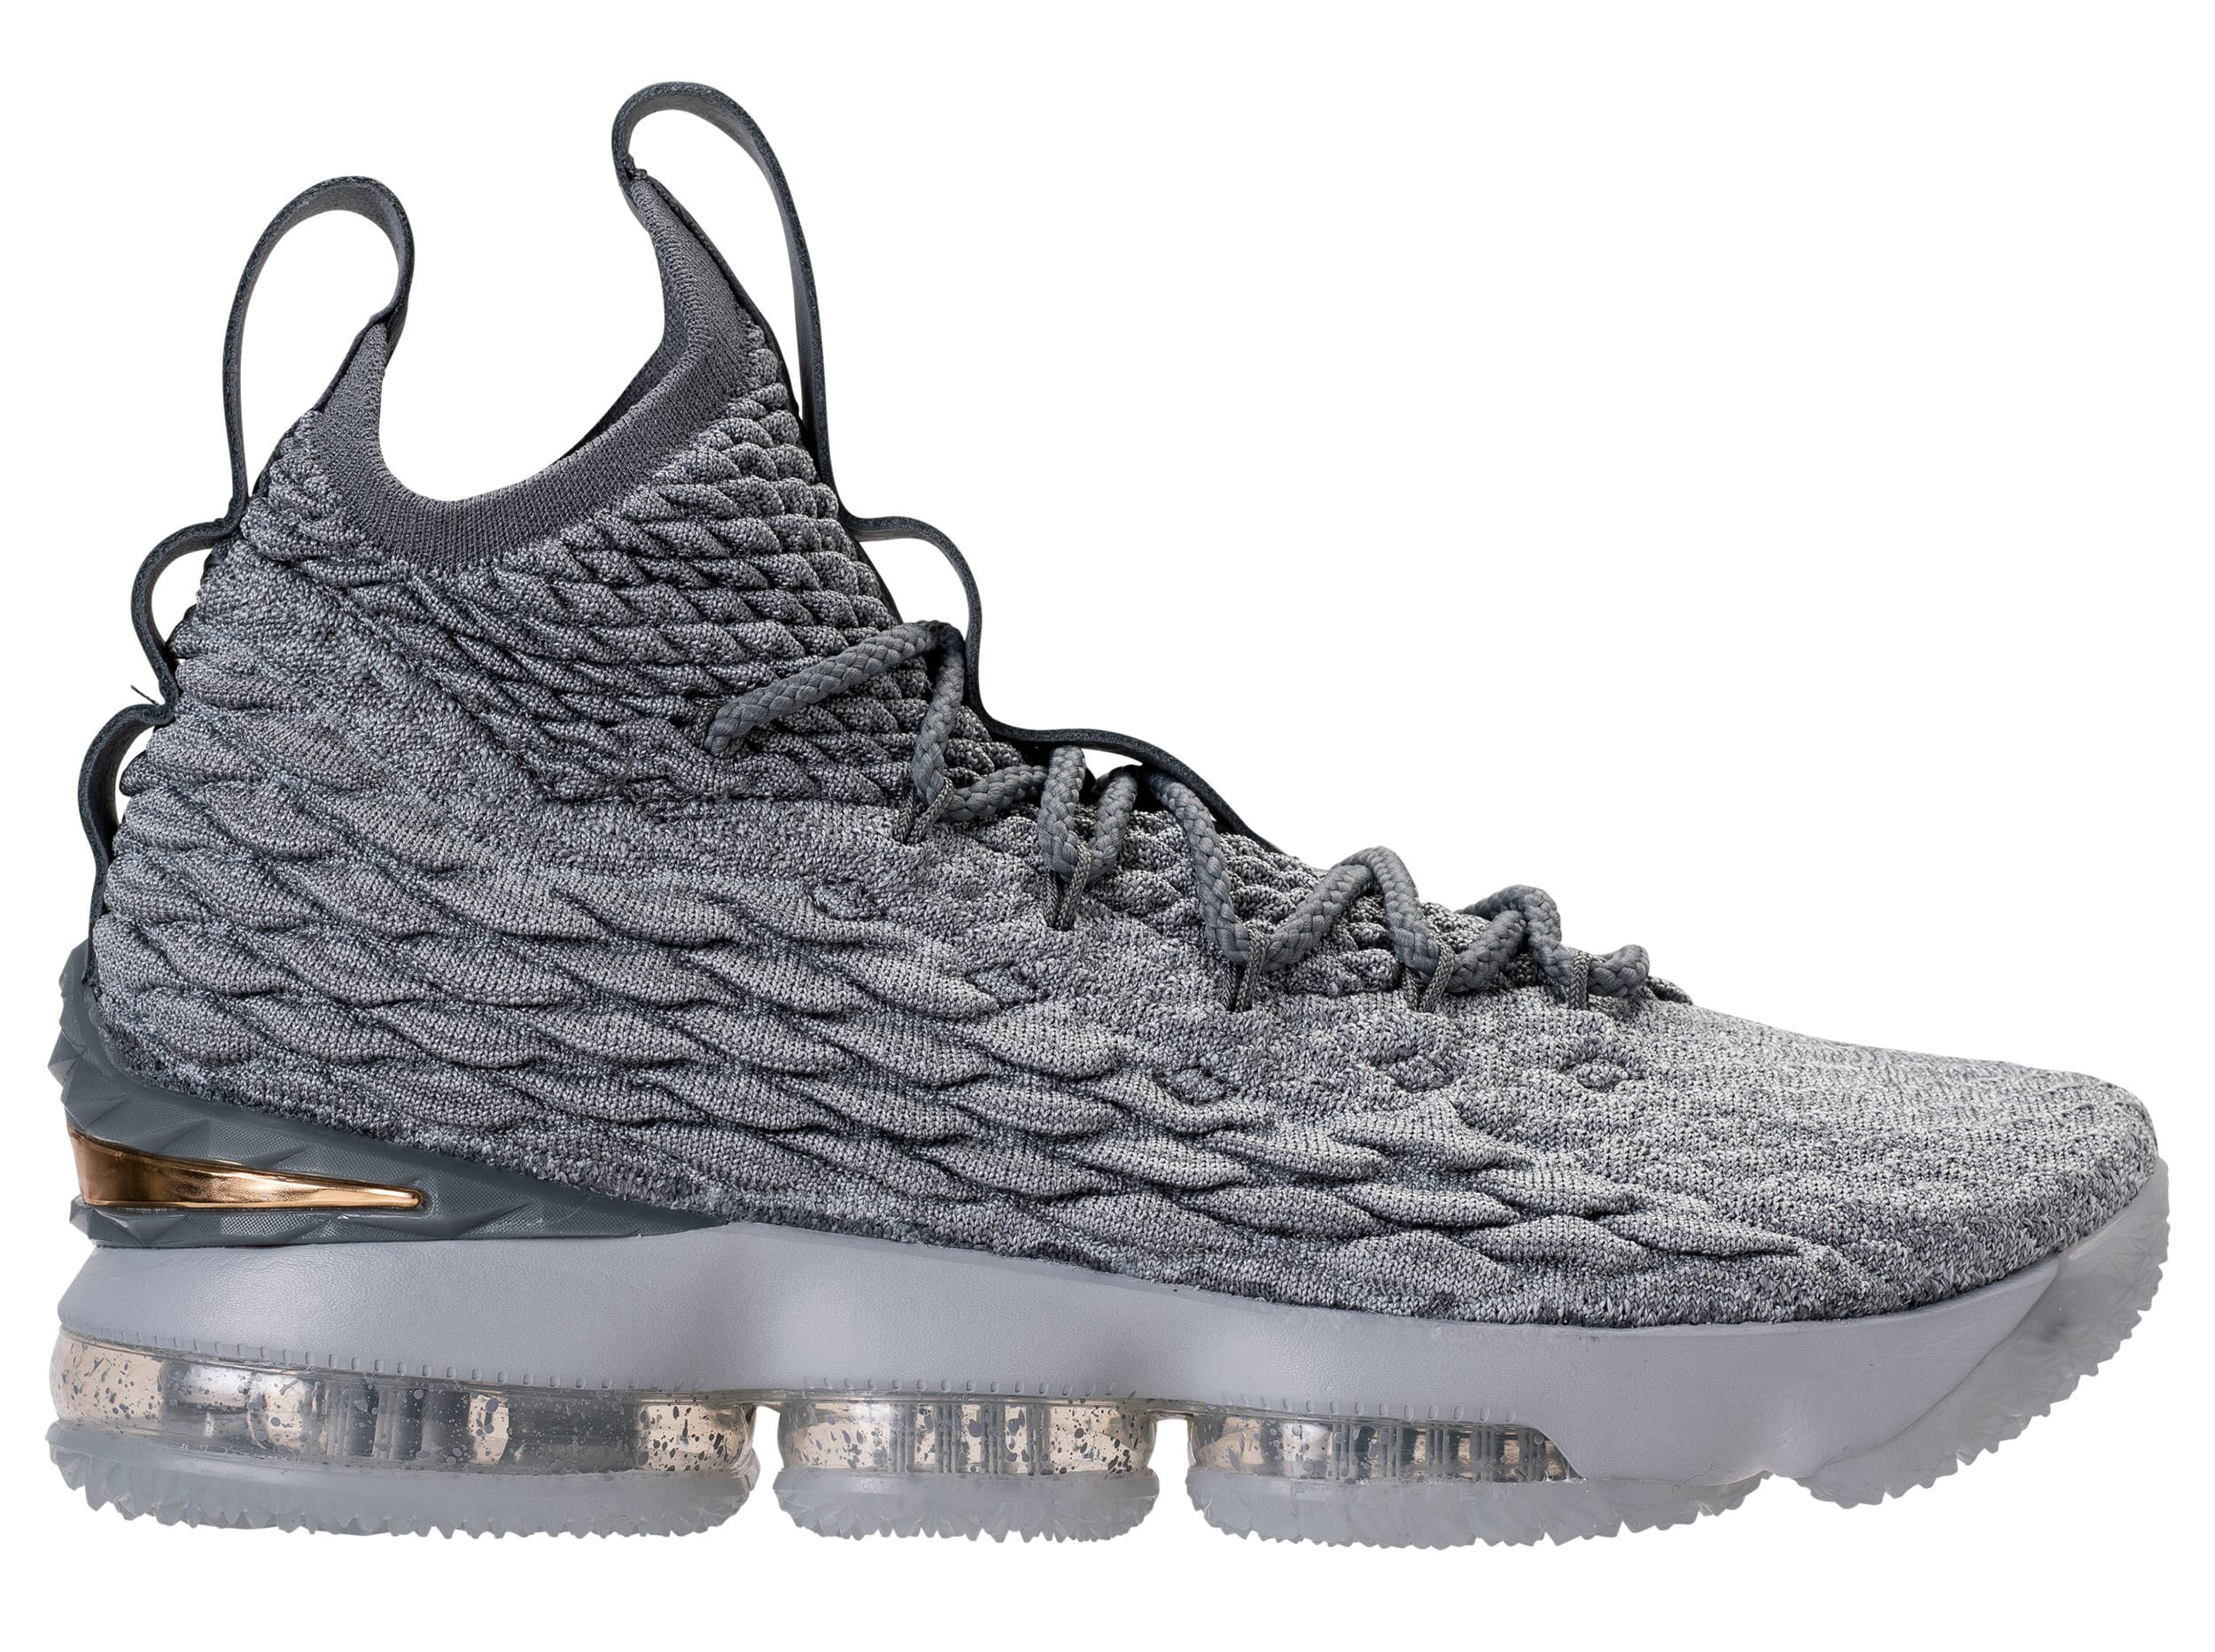 Nike LeBron 15 City Edition 897648-005